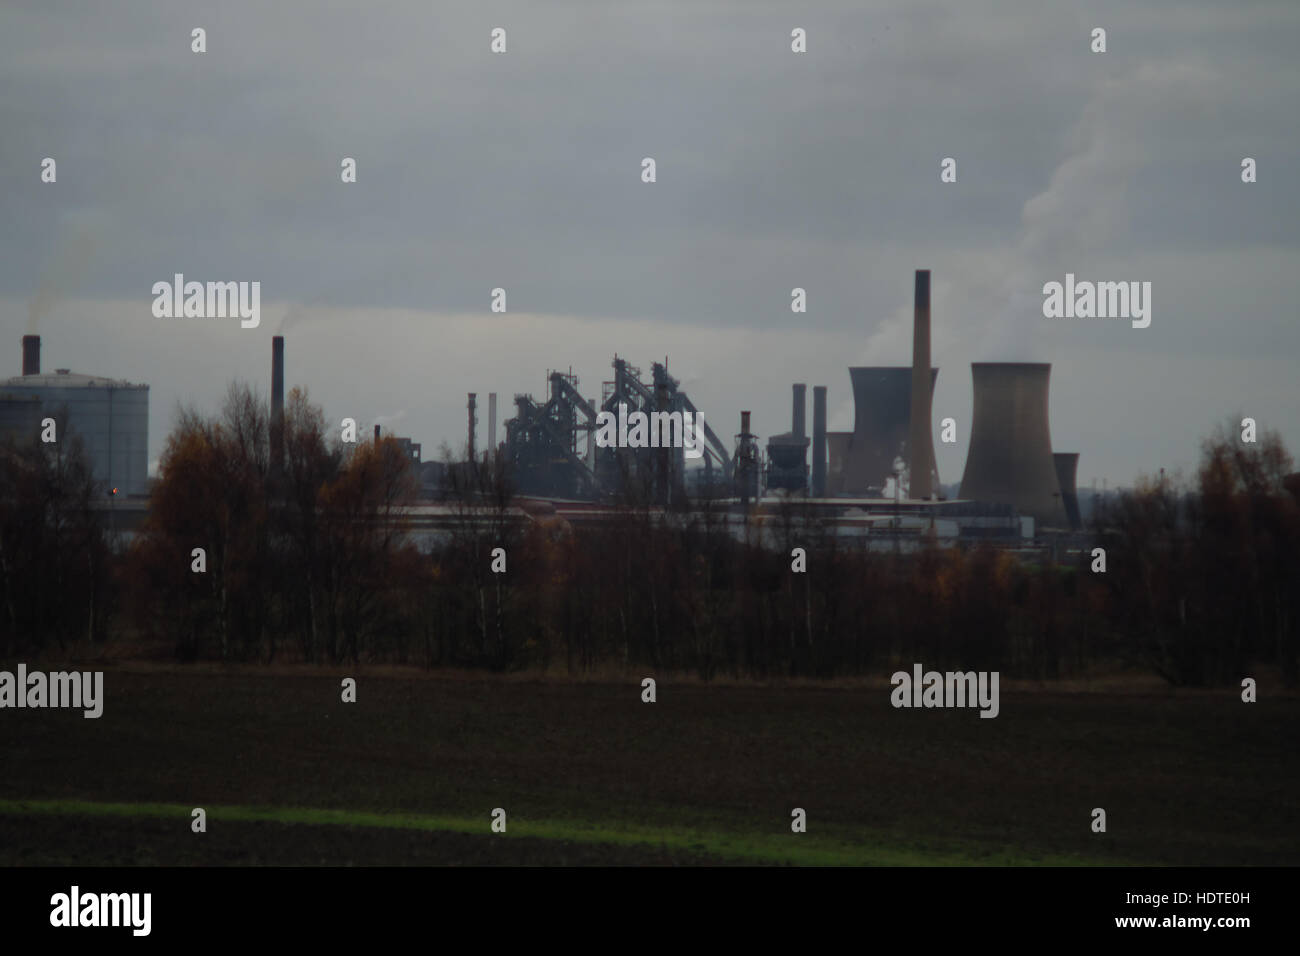 The British Steel works in Scunthorpe, recently acquired from Tata Steel, seen from the north in December 2016. - Stock Image